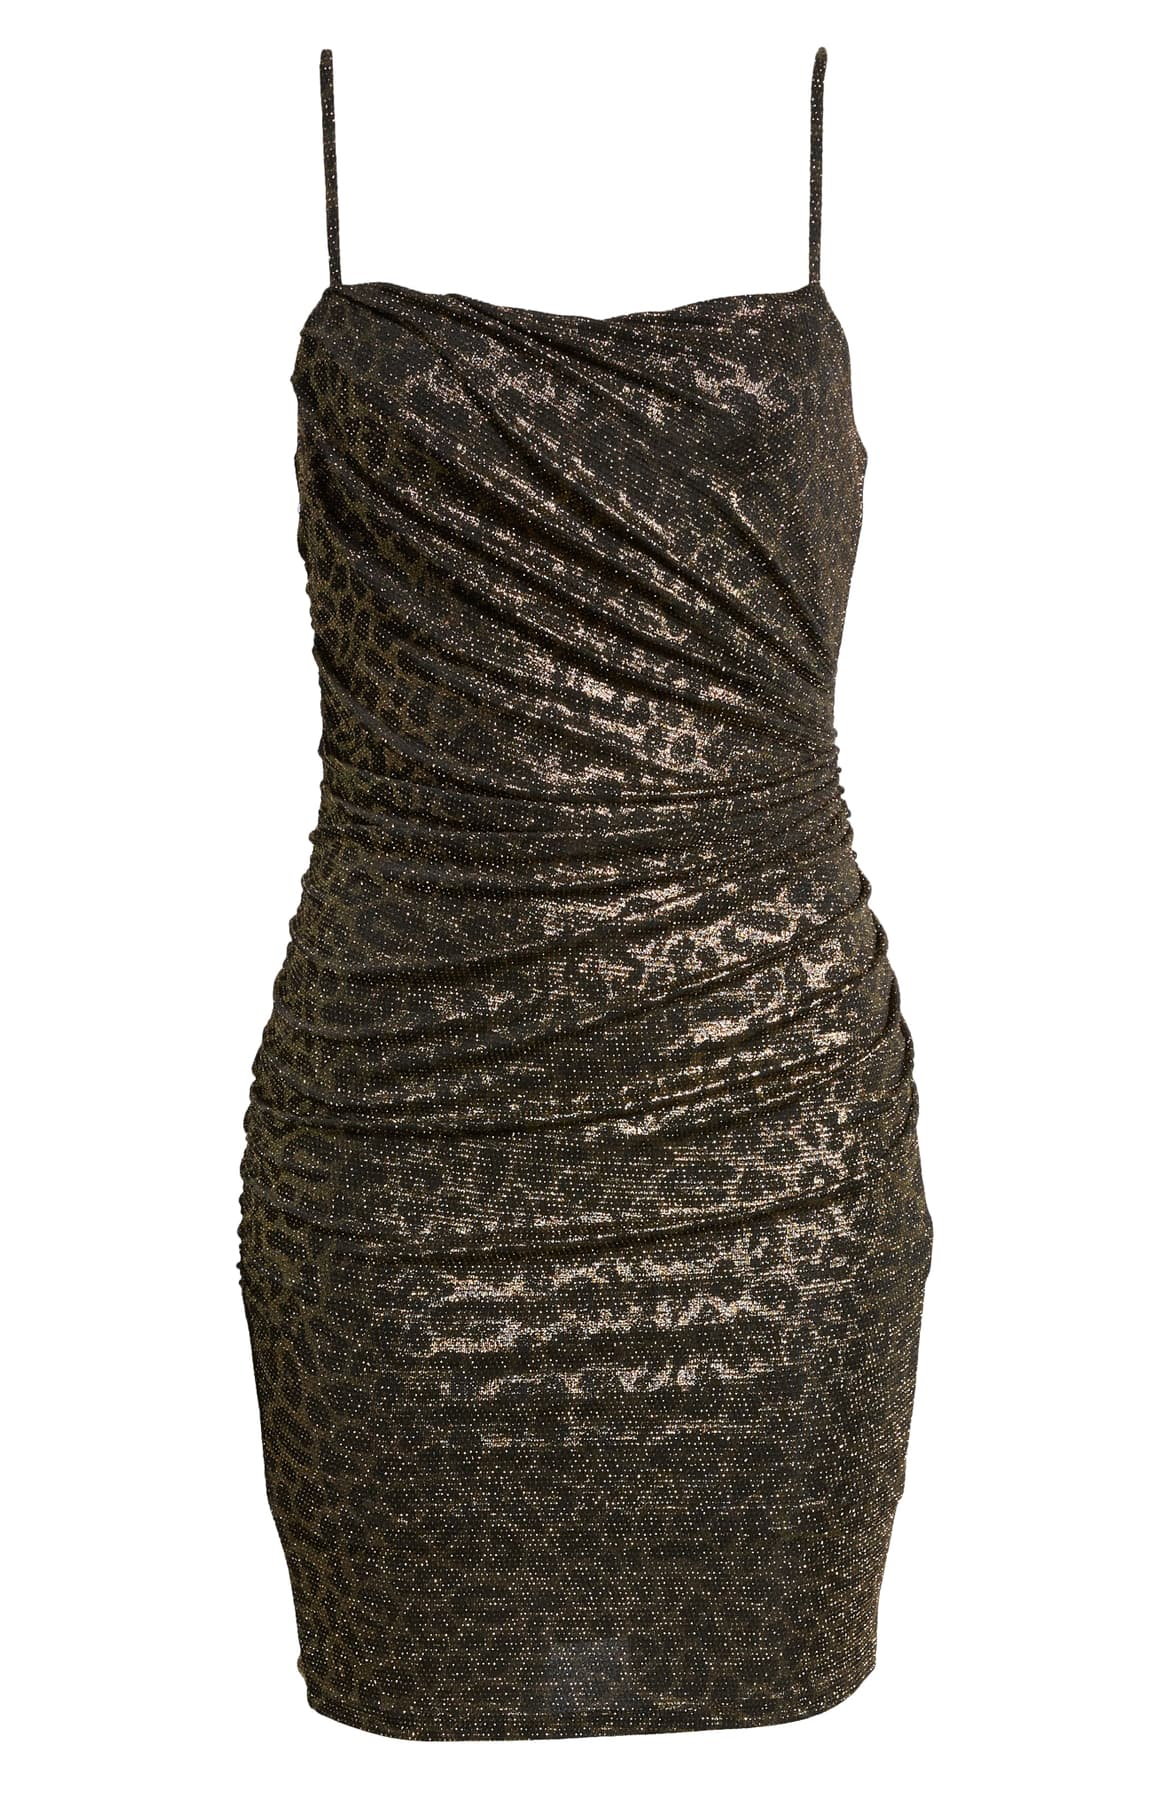 "<a  href=""https://shop.nordstrom.com/s/leith-ruched-body-con-minidress/5332097/full?origin=keywordsearch-personalizedsort&breadcrumb=Home/All%20Results&color=gold%20black%20leopard"" target=""_blank"" title=""https://shop.nordstrom.com/s/leith-ruched-body-con-minidress/5332097/full?origin=keywordsearch-personalizedsort&breadcrumb=Home/All%20Results&color=gold%20black%20leopard"">Ruched Body-Con Minidress - $35.40</a>.{&nbsp;}From cozy to gold hued to tailored, Nordstrom has the hottest trends for getting glam this holiday season! (Credit: Nordstrom)"